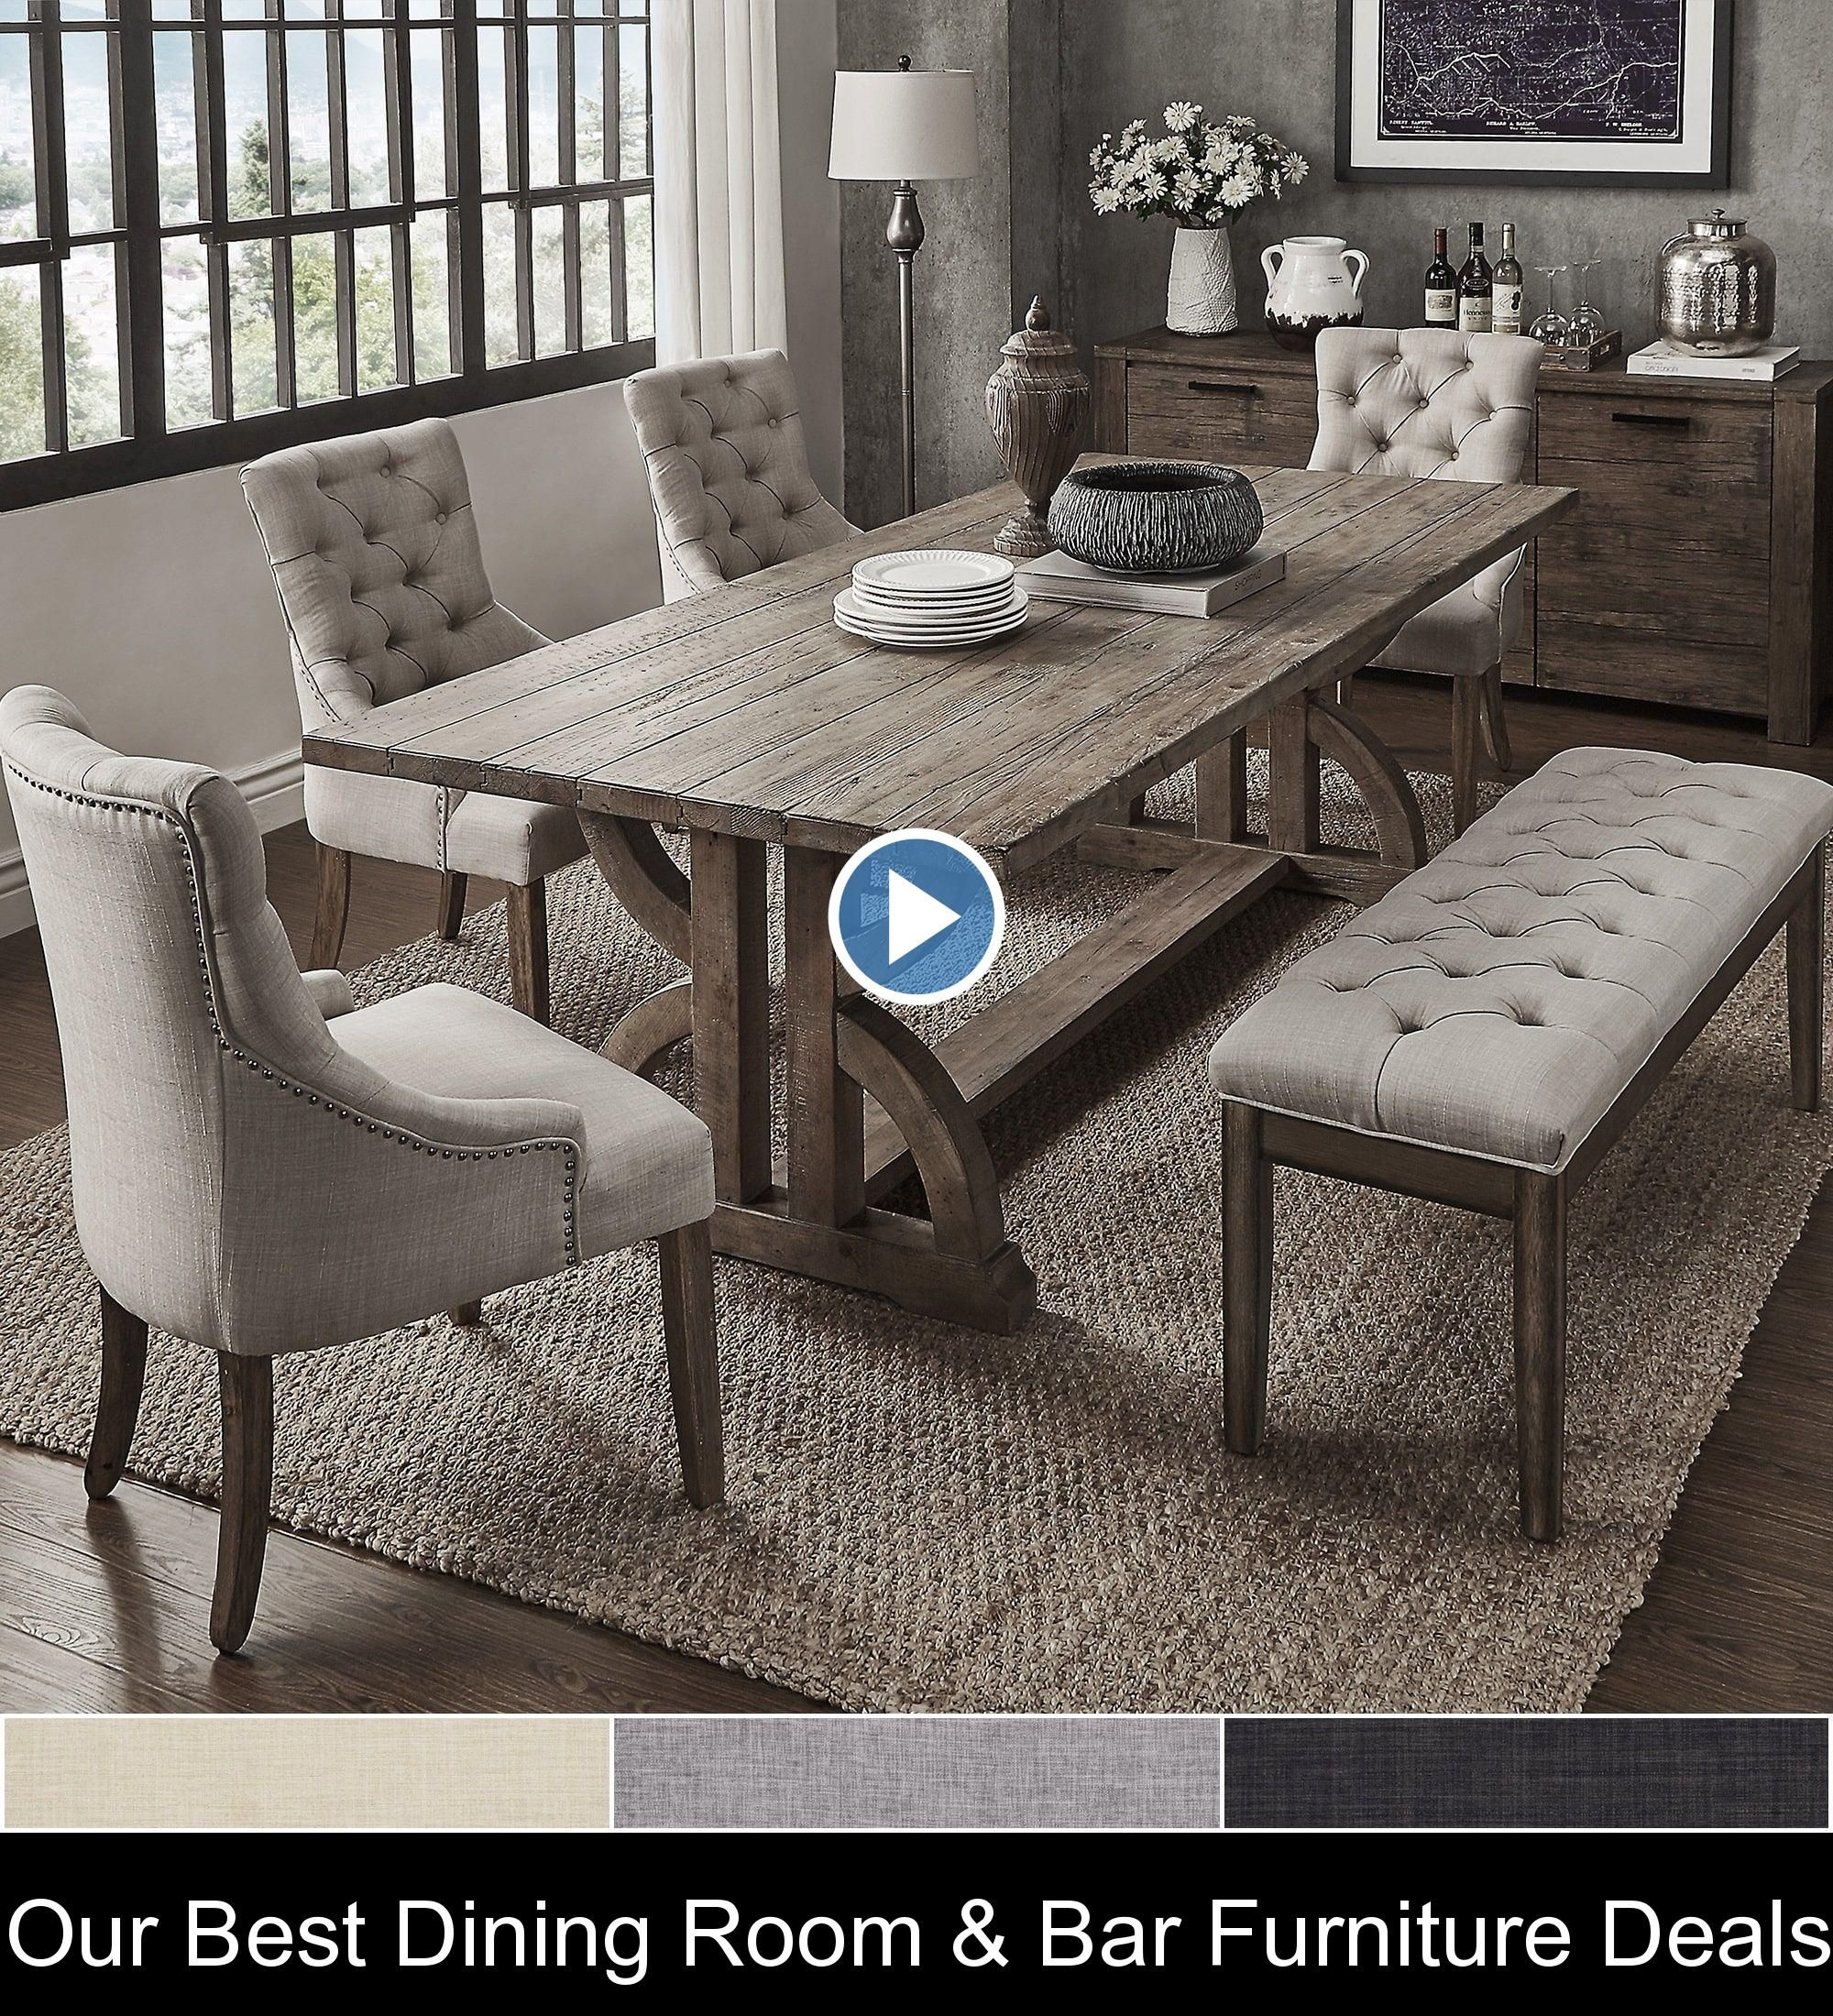 Our Best Dining Room & Bar Furniture Deals {146925} #dining #room #table #diningroomtable Paloma Salvaged Reclaimed Pine Wood 6-Piece Rectangle Dining Set by iNSPIRE Q Artisan (6-Piece Set - Grey Linen)